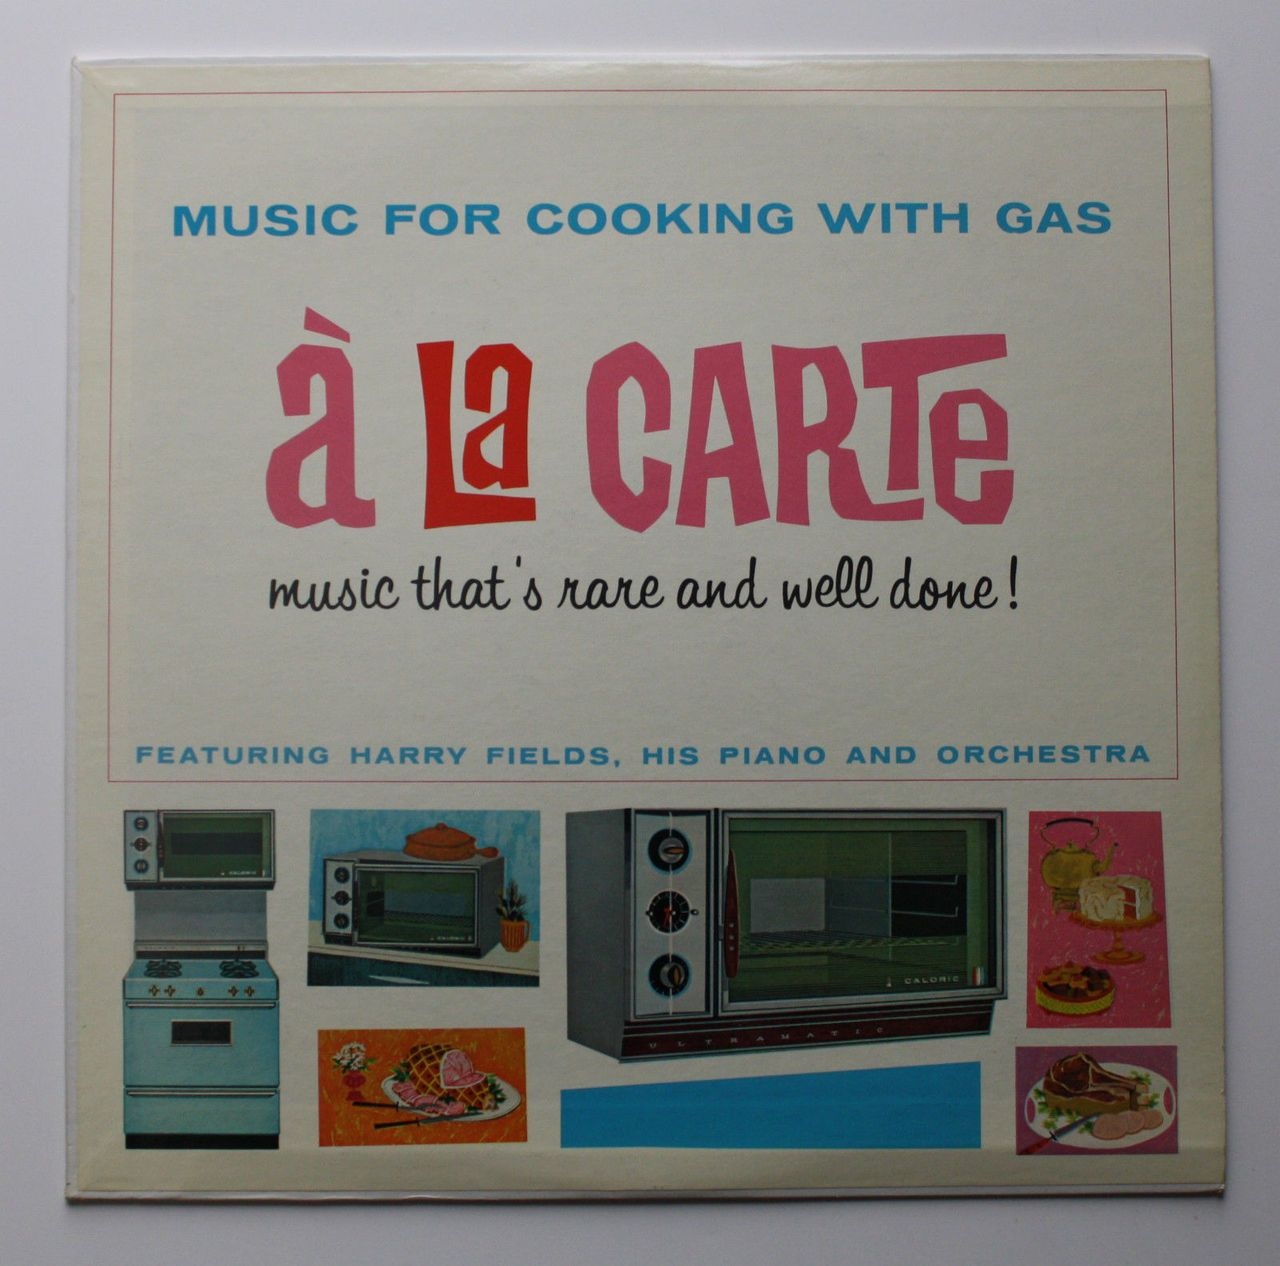 Carte Orchestra.Harry Fields His Piano And Orchestra Music For Cooking With Gas A